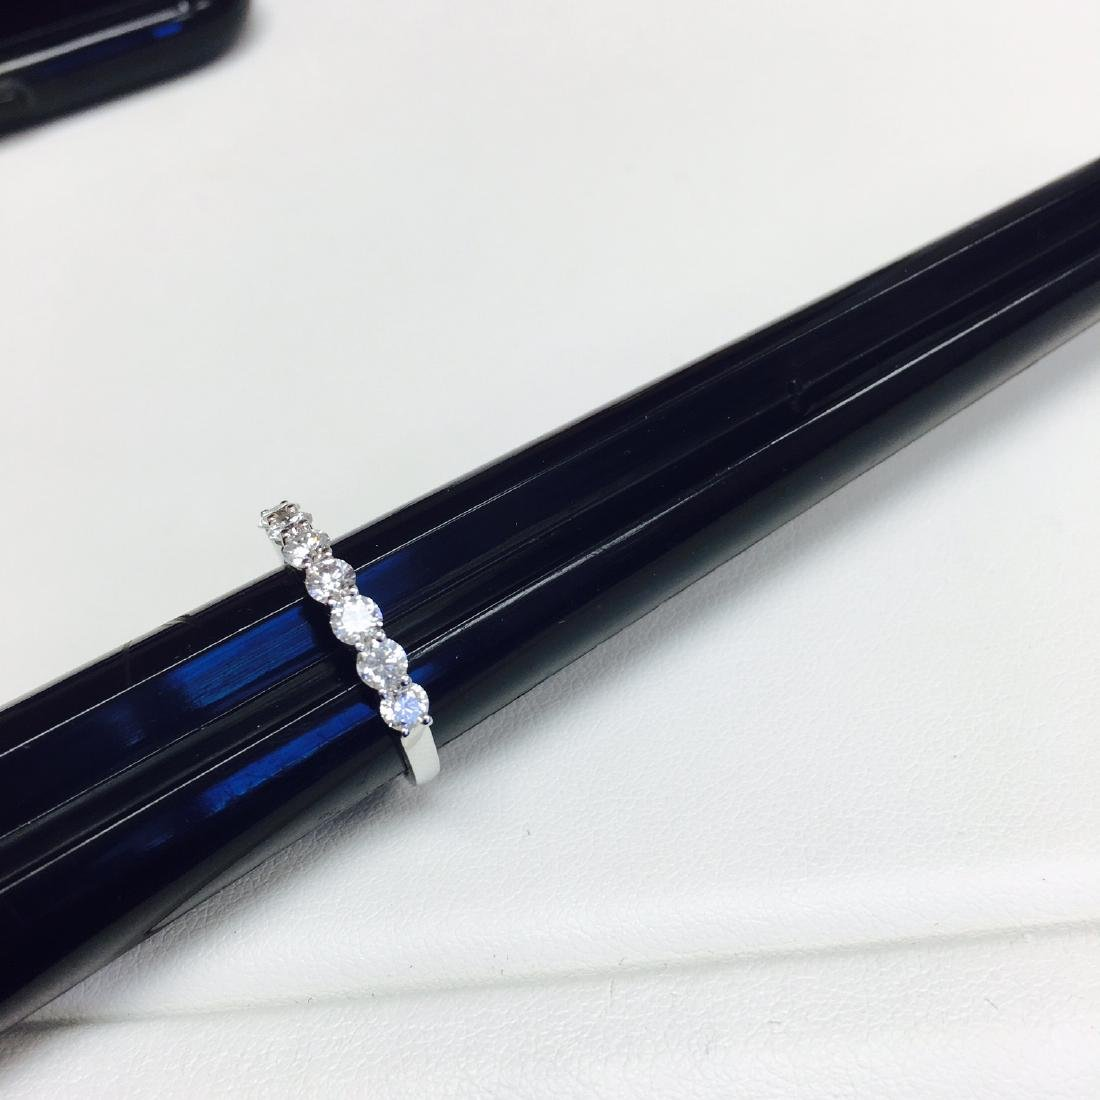 VVS Clarity and F Color Diamond Engagement Ring - 2